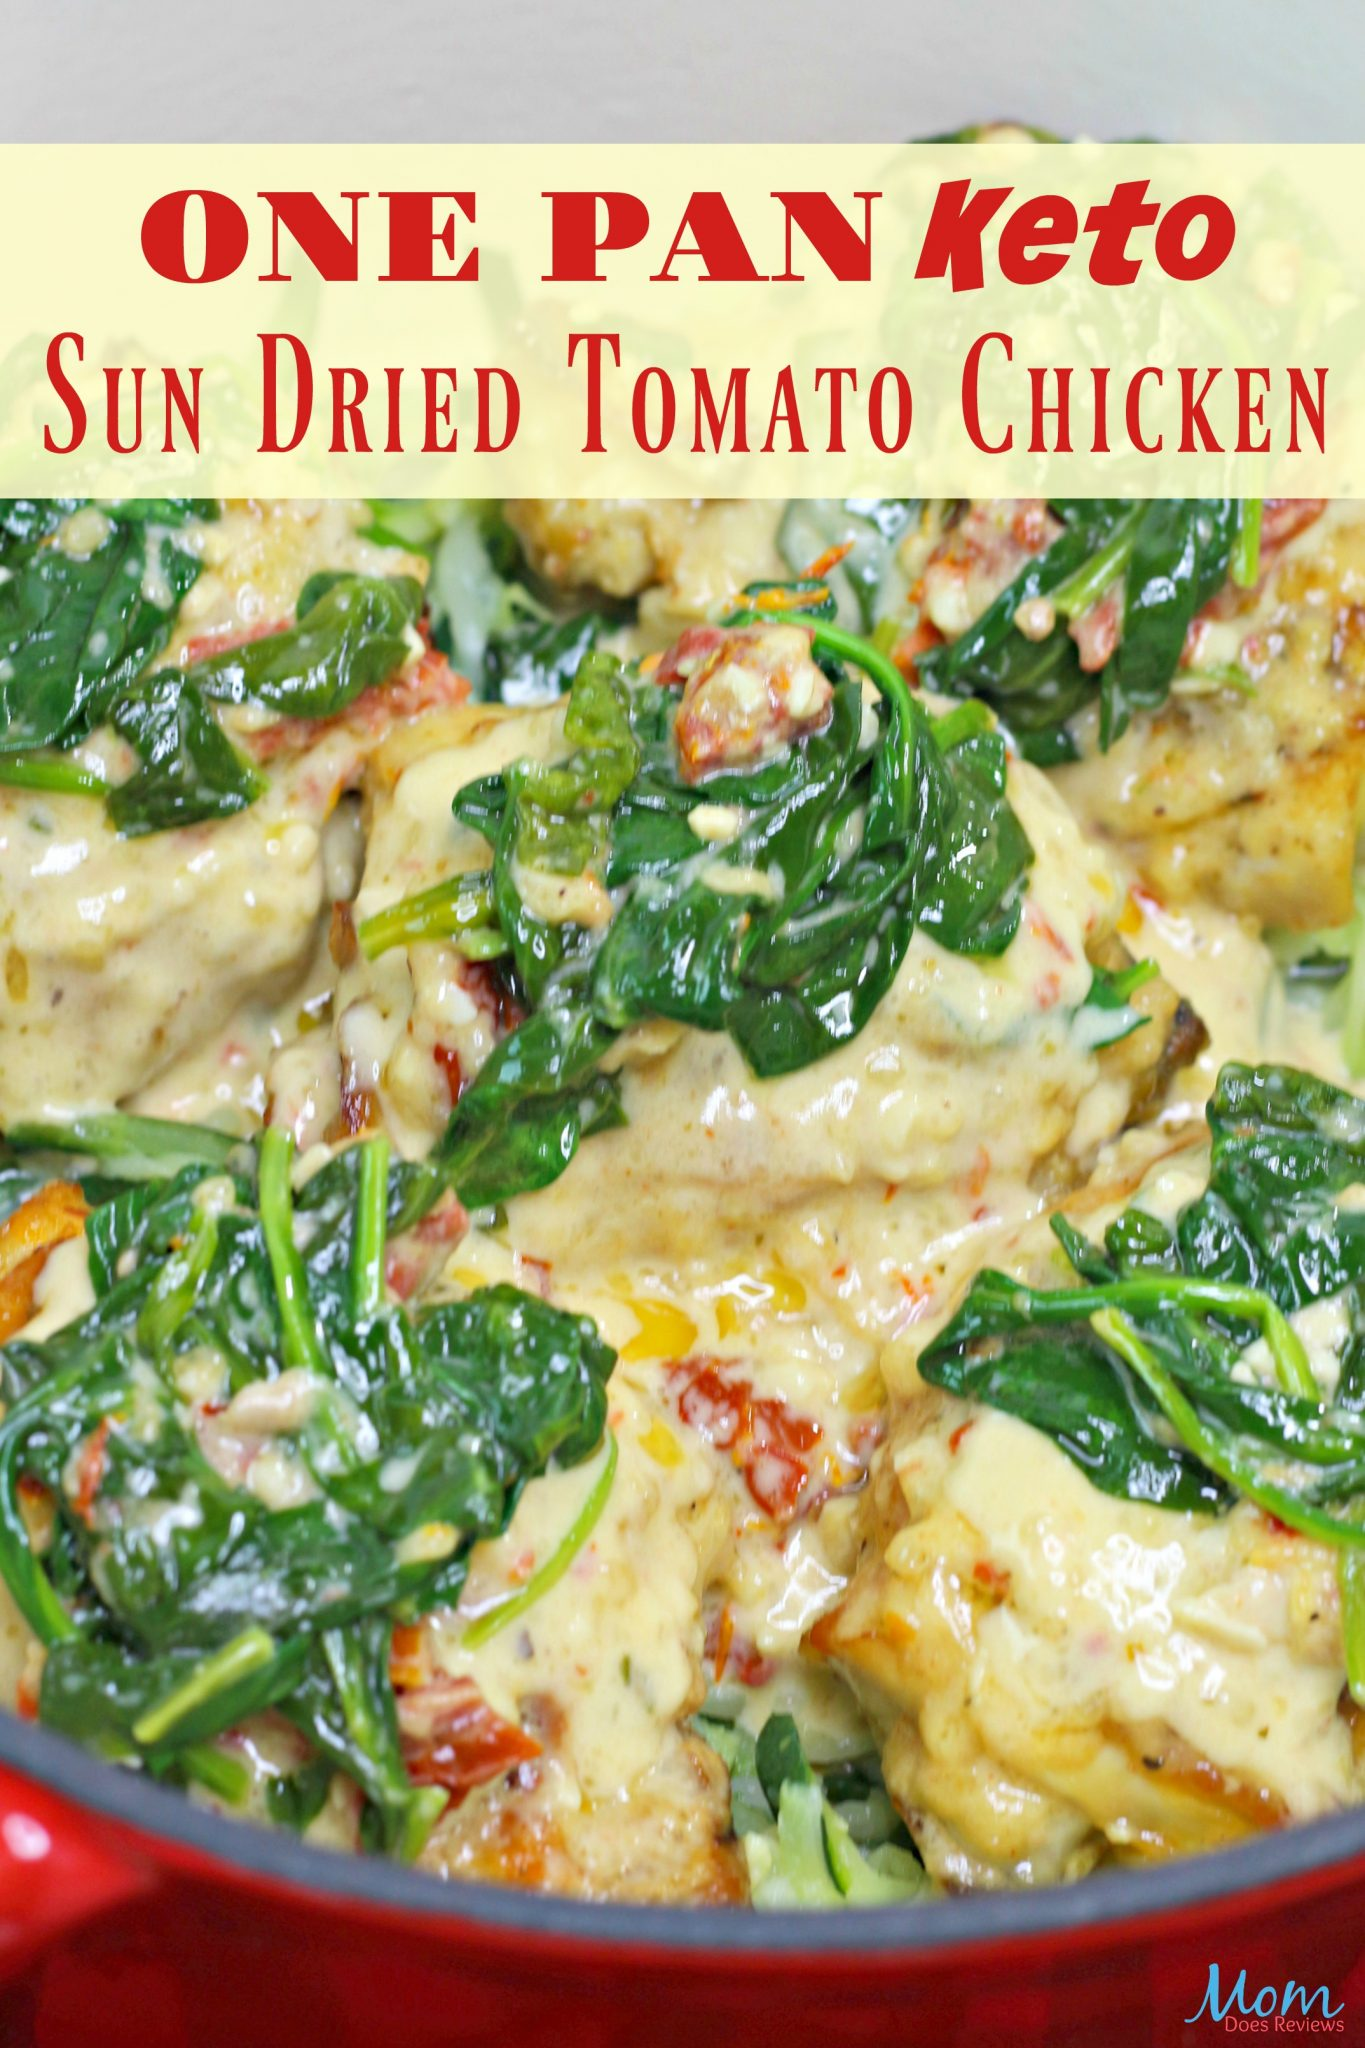 One Pan Keto Sun Dried Tomato Chicken #Recipe #easyrecipe #keto #ketodiet #chicken #getinmybelly #onepanrecipe